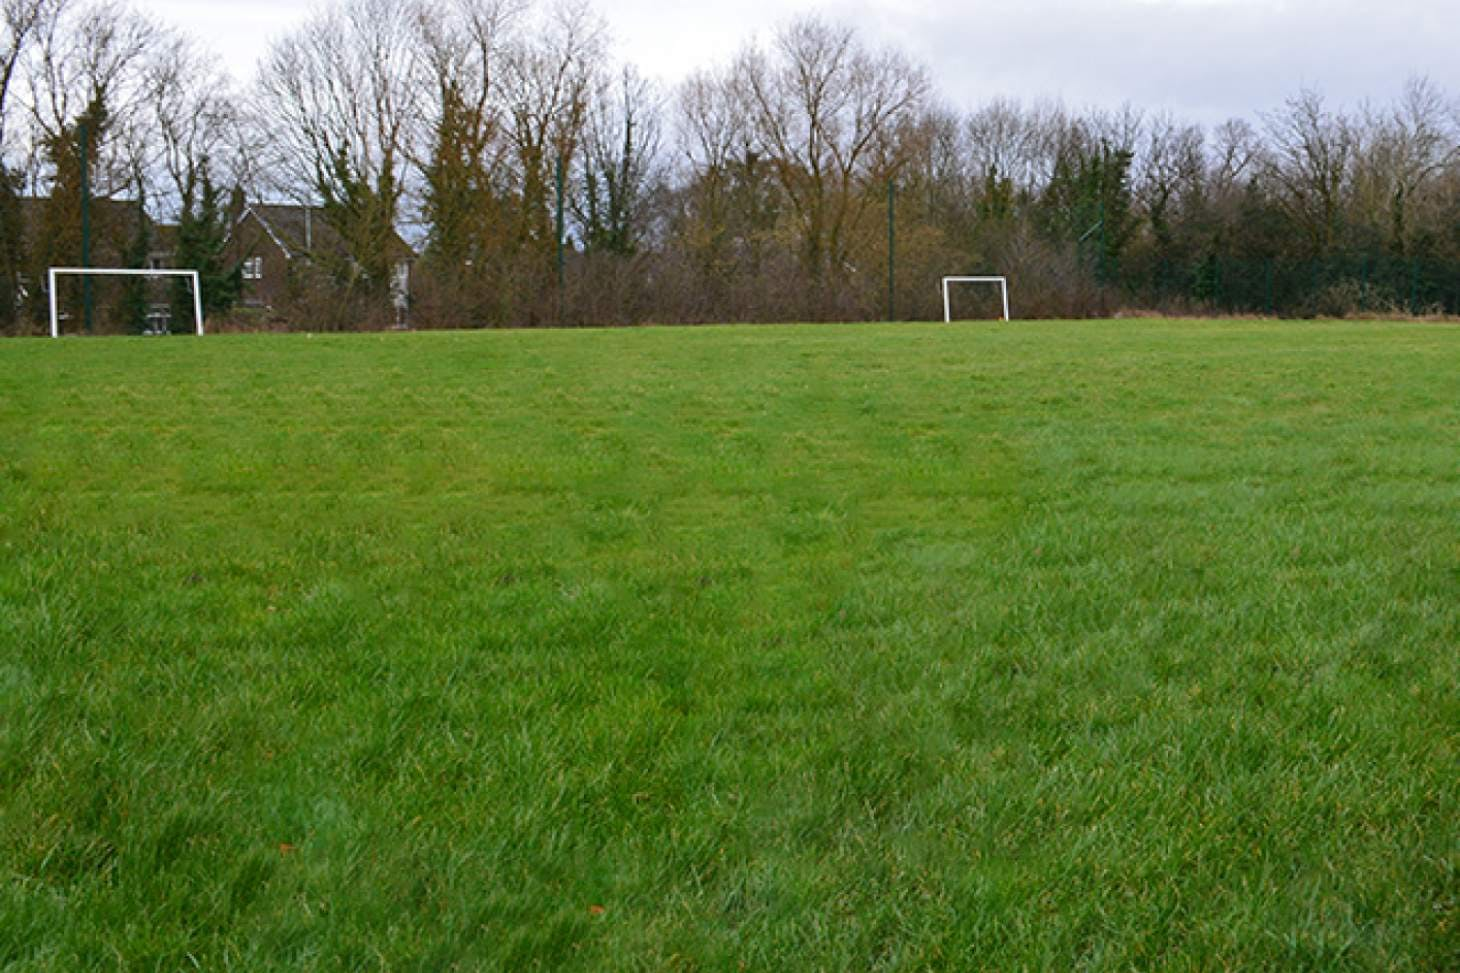 South Manchester Sports Club 9 a side | Grass football pitch